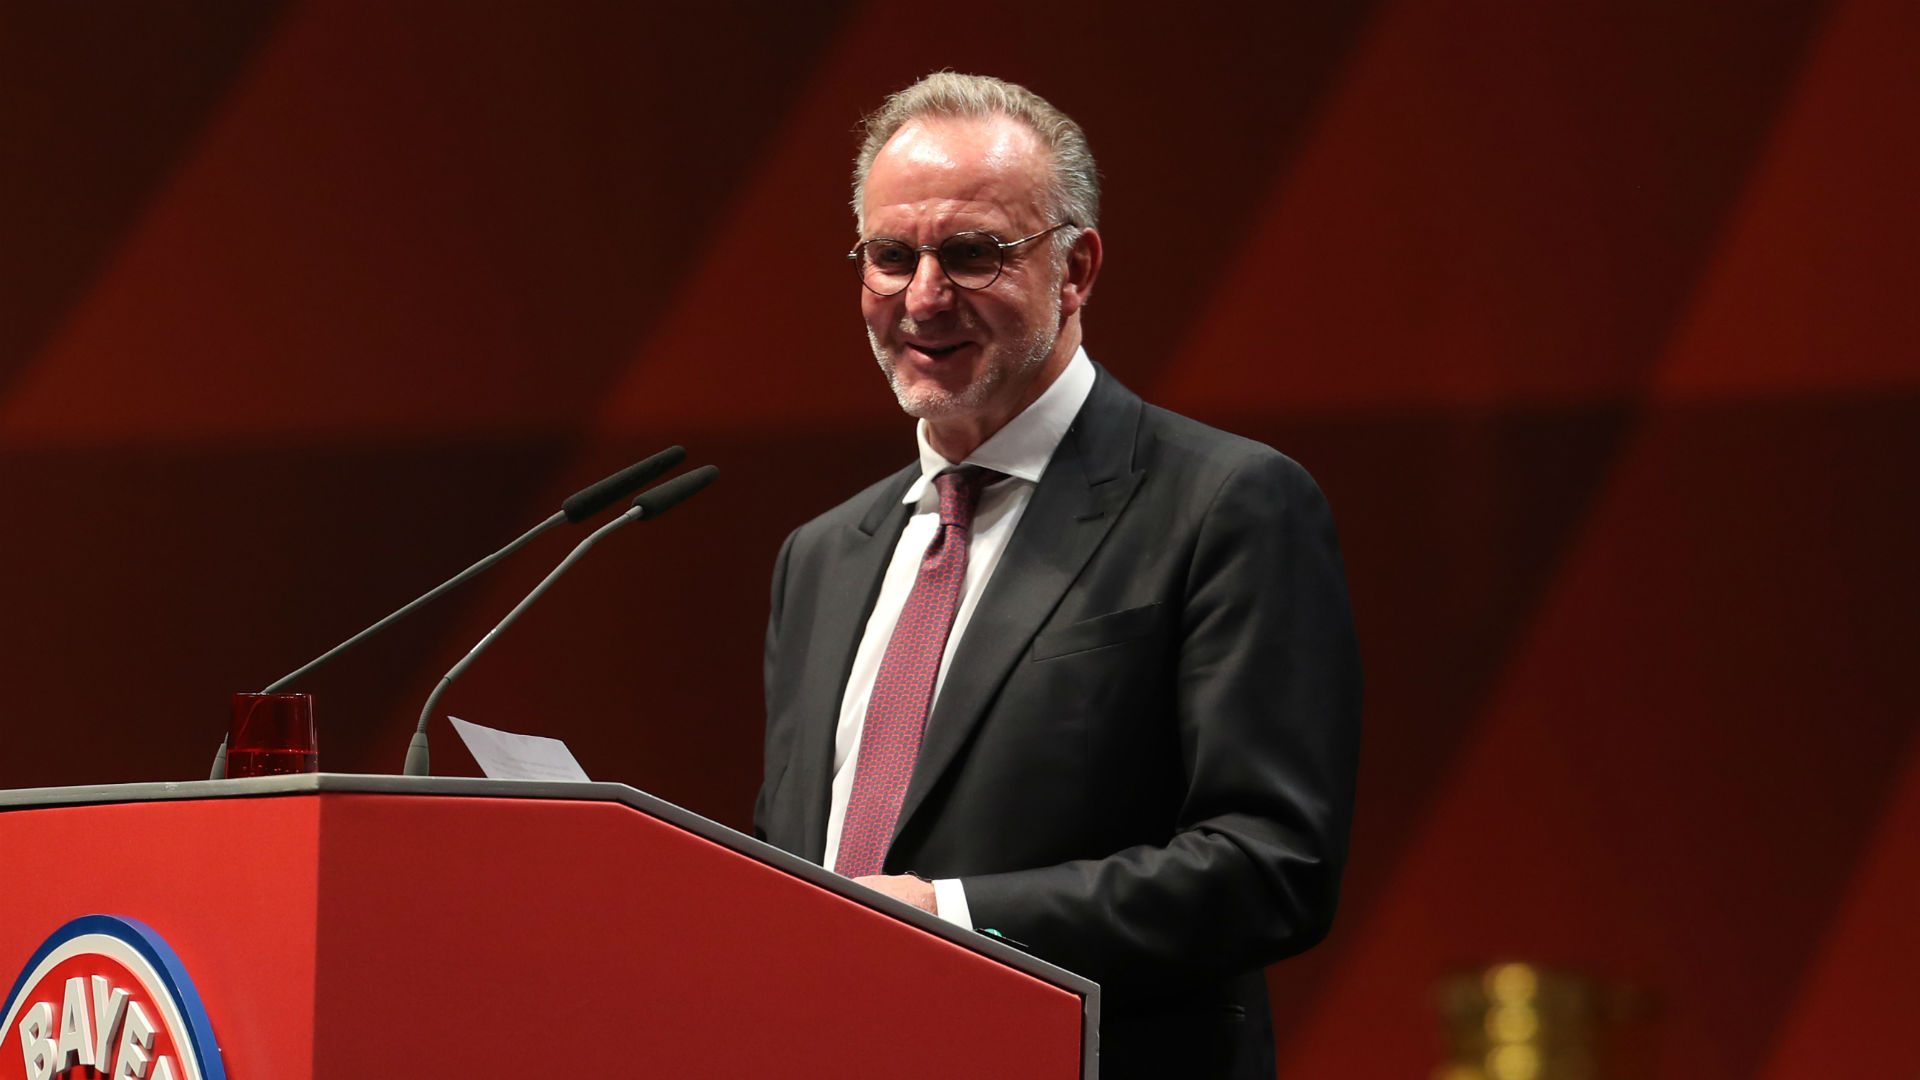 Football has to be rational – Rummenigge expects transfer market to change post-coronavirus